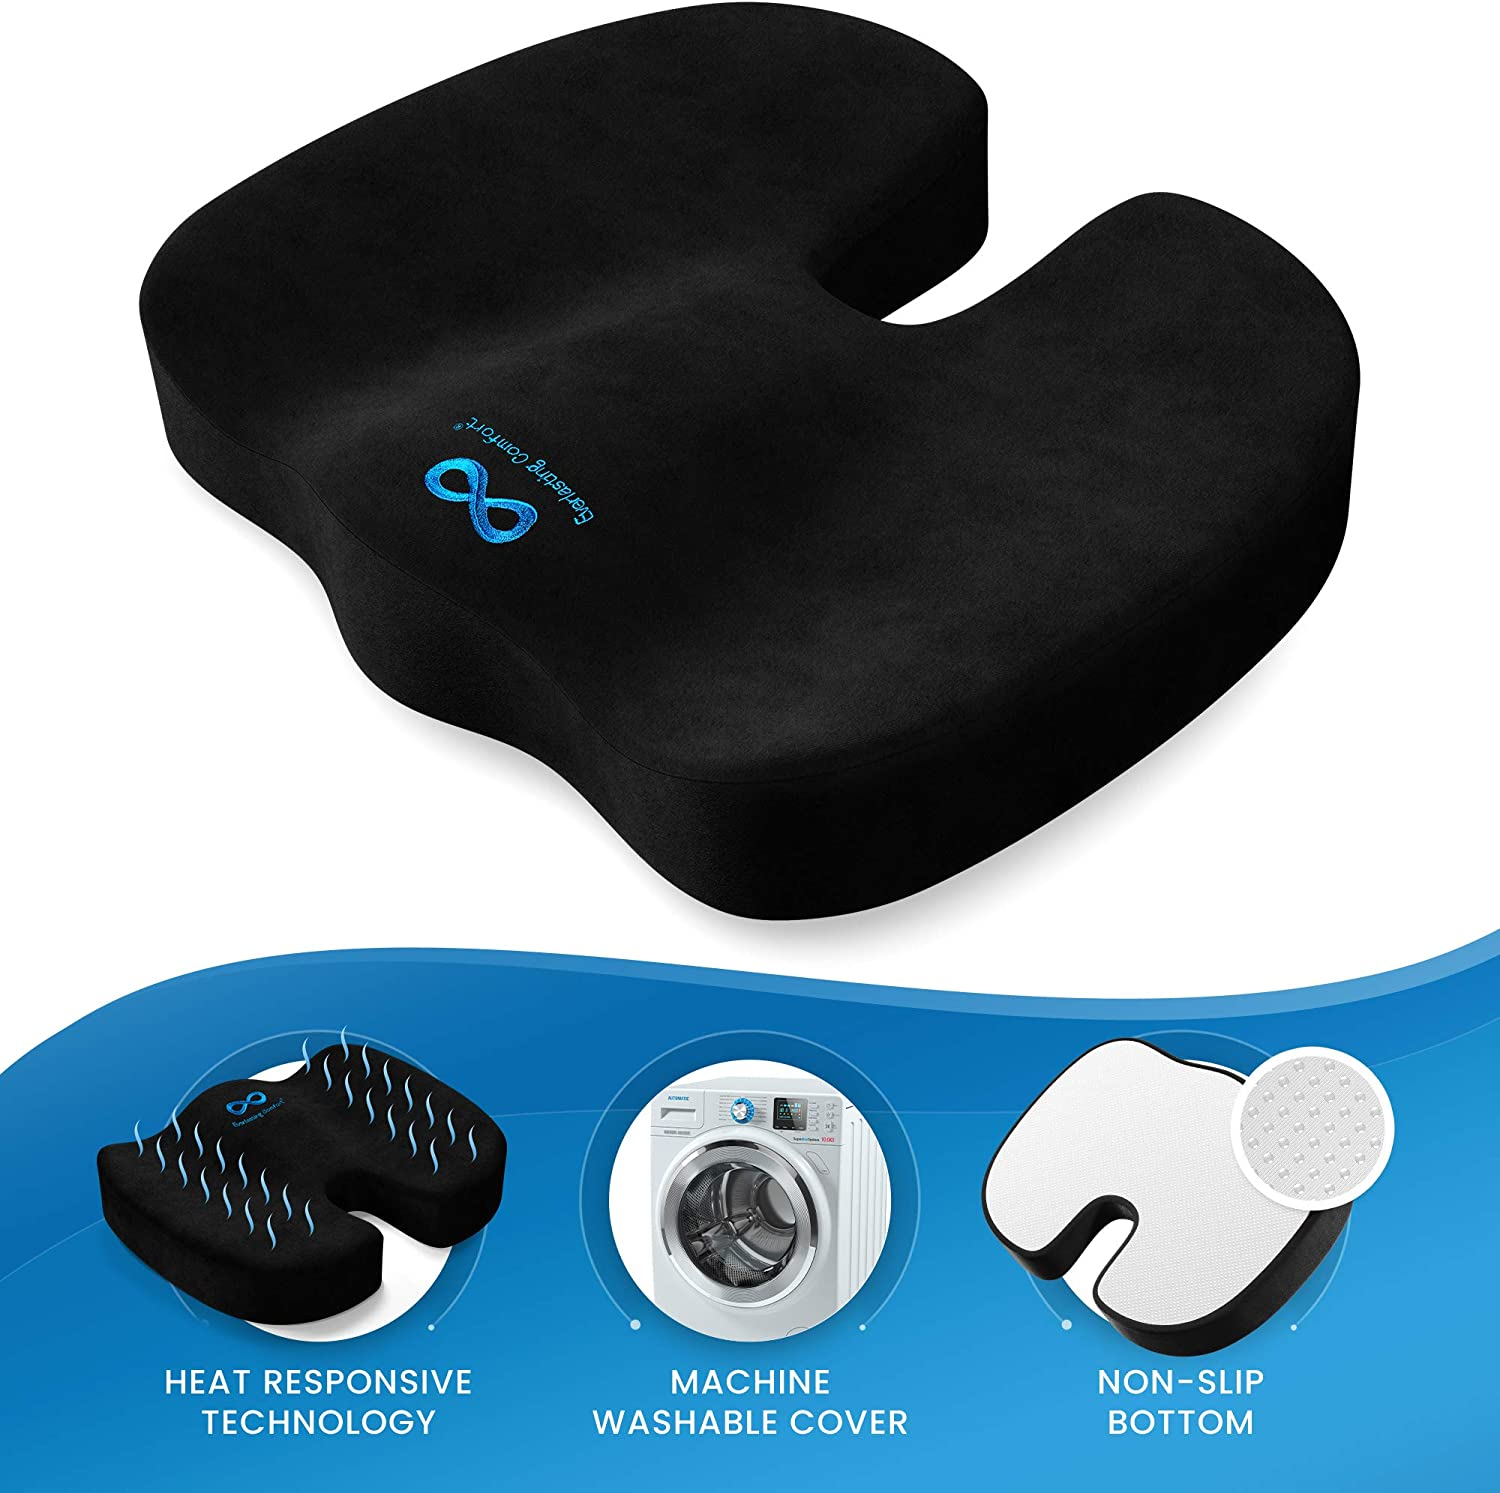 81n9KkeABAL. AC SL1500 - What Is The Best Car Seat Cushion For Leg Pain? - ChairPicks